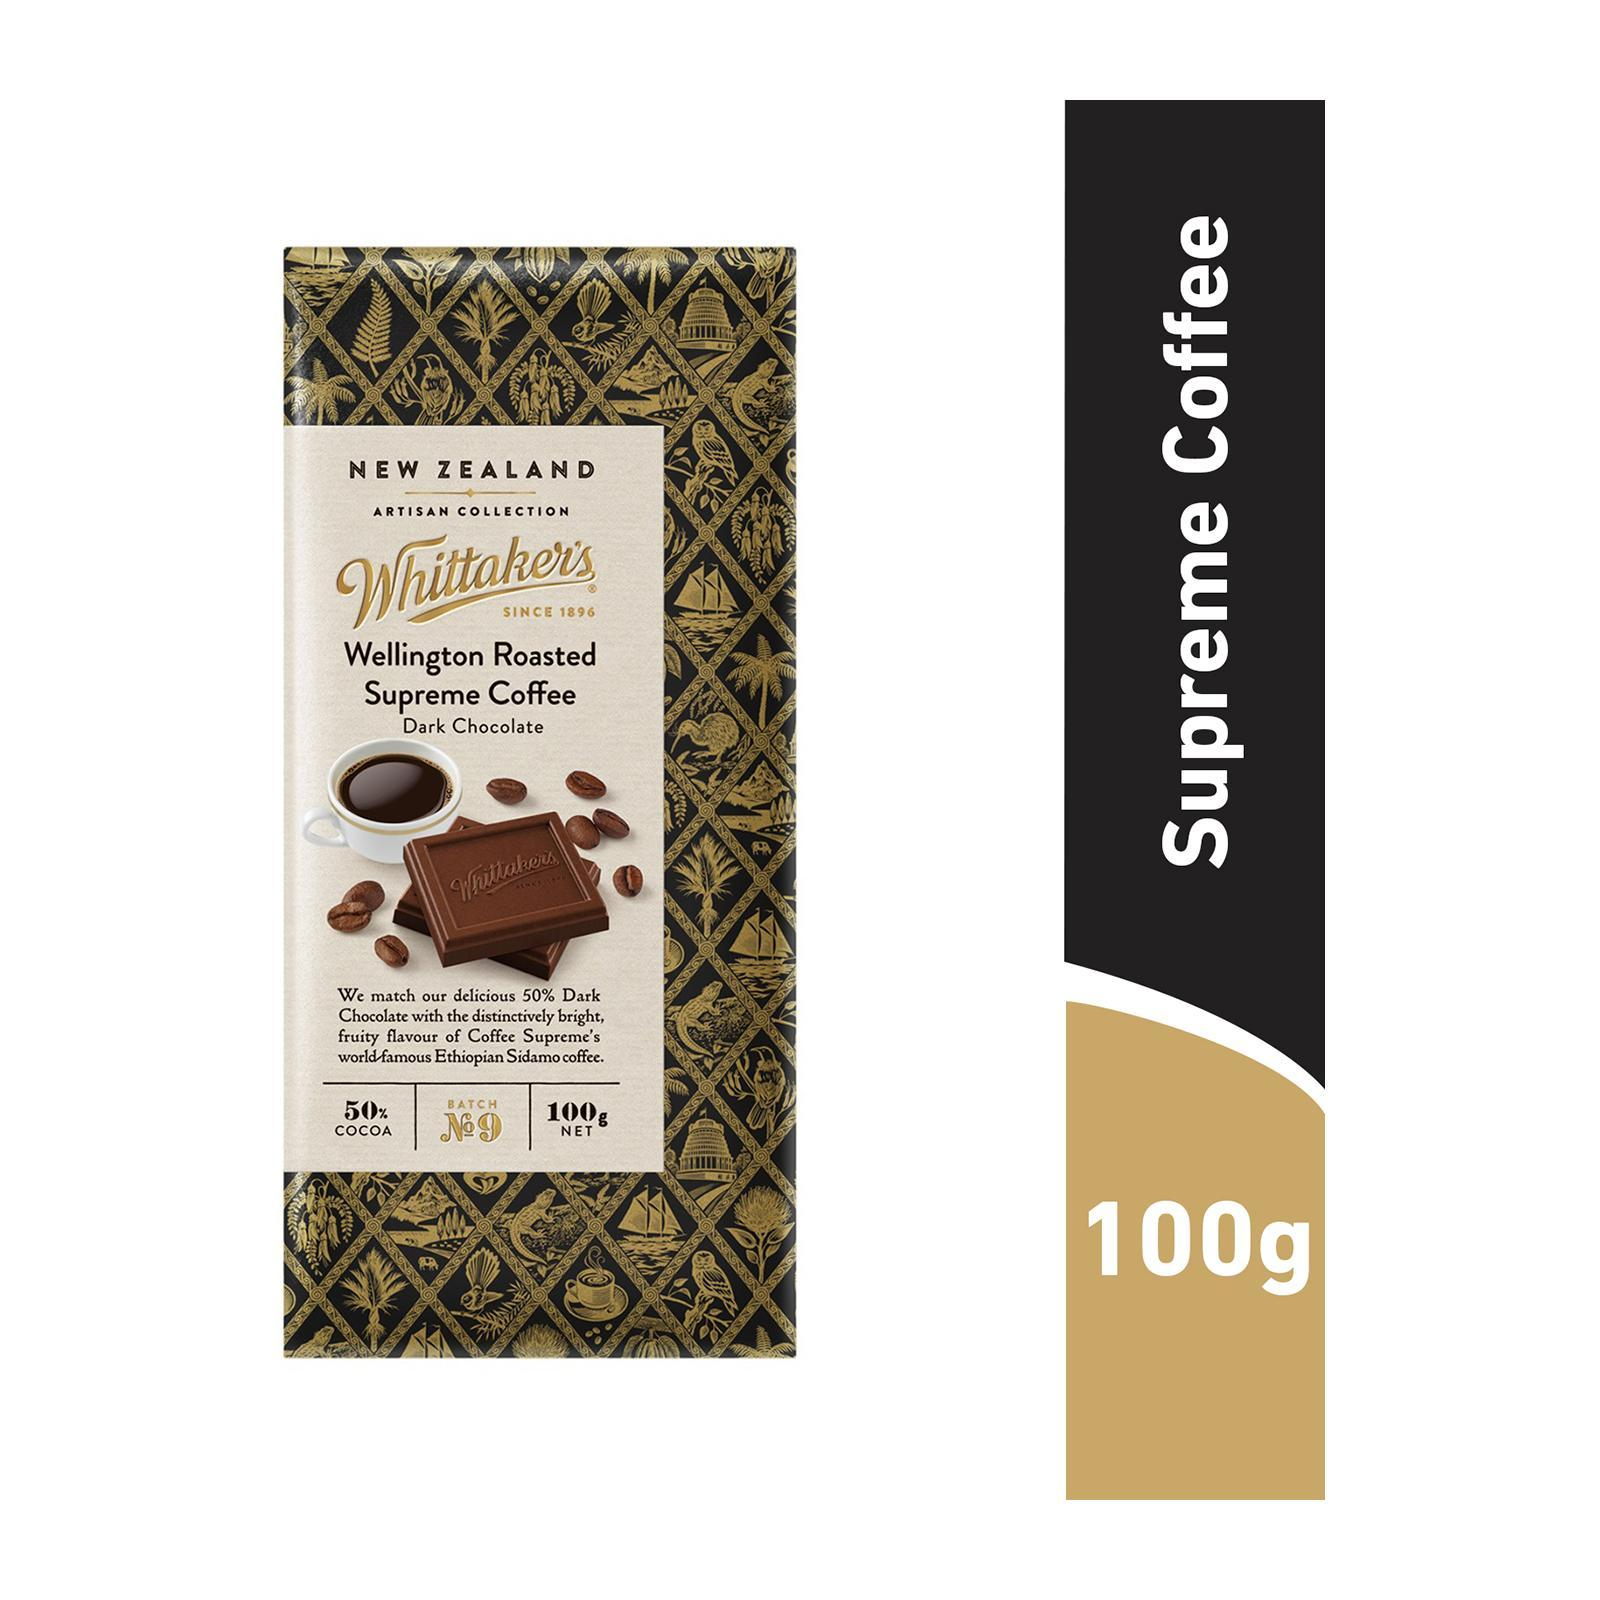 Whittaker's Wellington Roasted Supreme Coffee Chocolate Artisan Collection